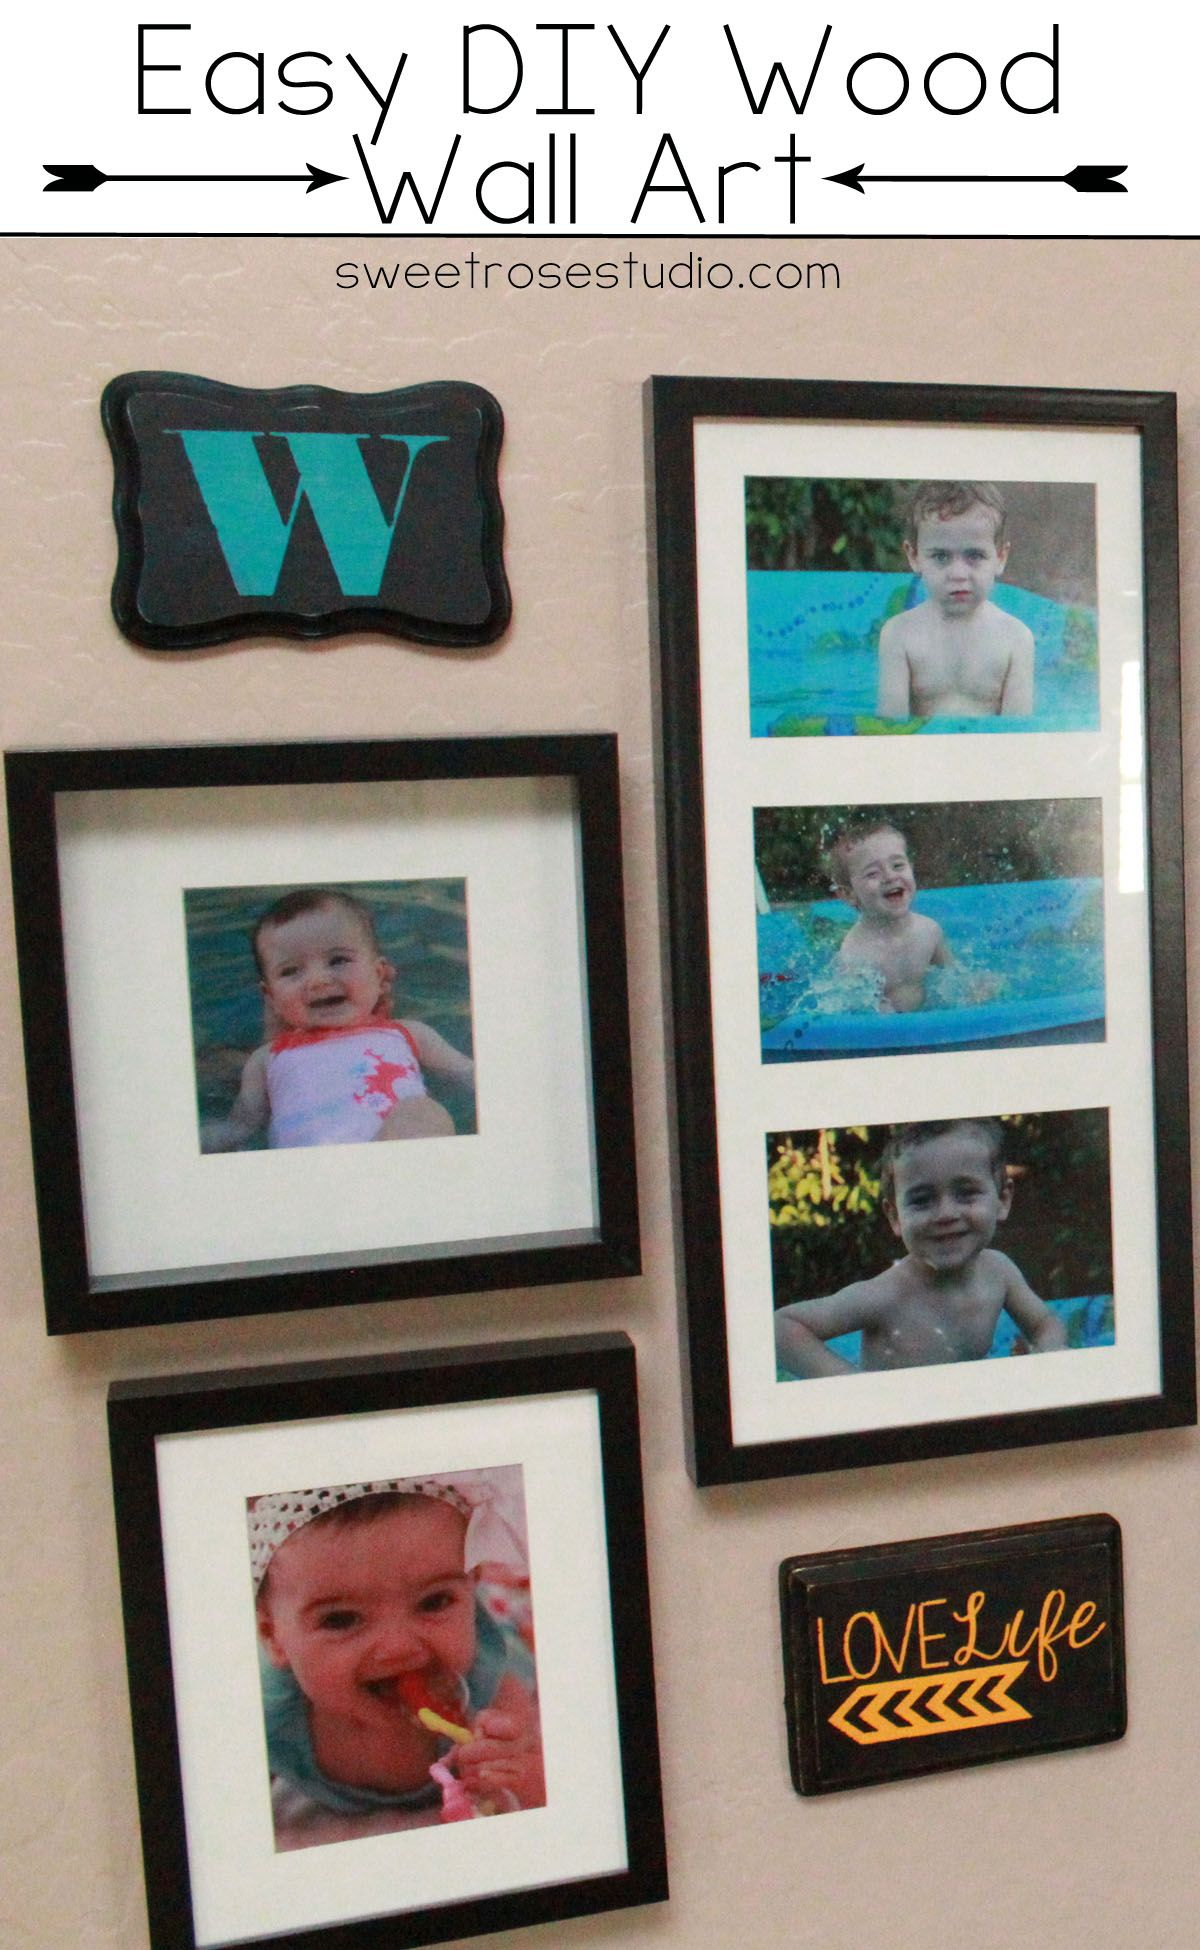 Easy diy wood wall art diyus how to pinterest diy wood